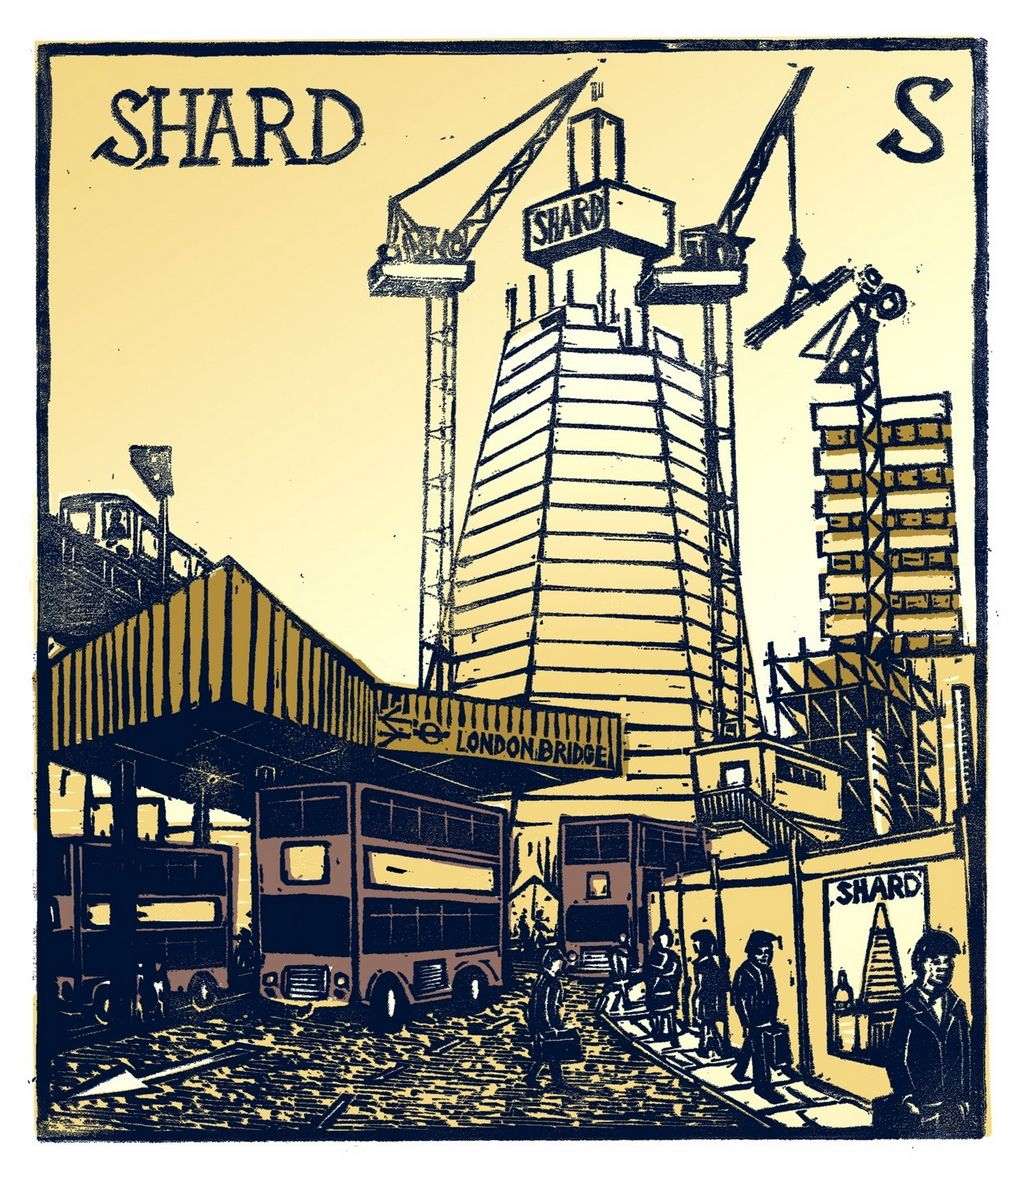 """""""S - The Shard"""" from """"London A-Z"""" Complete Boxed Set linocuts by Tobias Till, 2012. http://www.tobias-till.co.uk/. Tags: Linocut, Cut, Print, Linoleum, Lino, Carving, Block, Woodcut, Helen Elstone, Buildings, Architecture, Tower, Skyscraper, Cranes, People."""